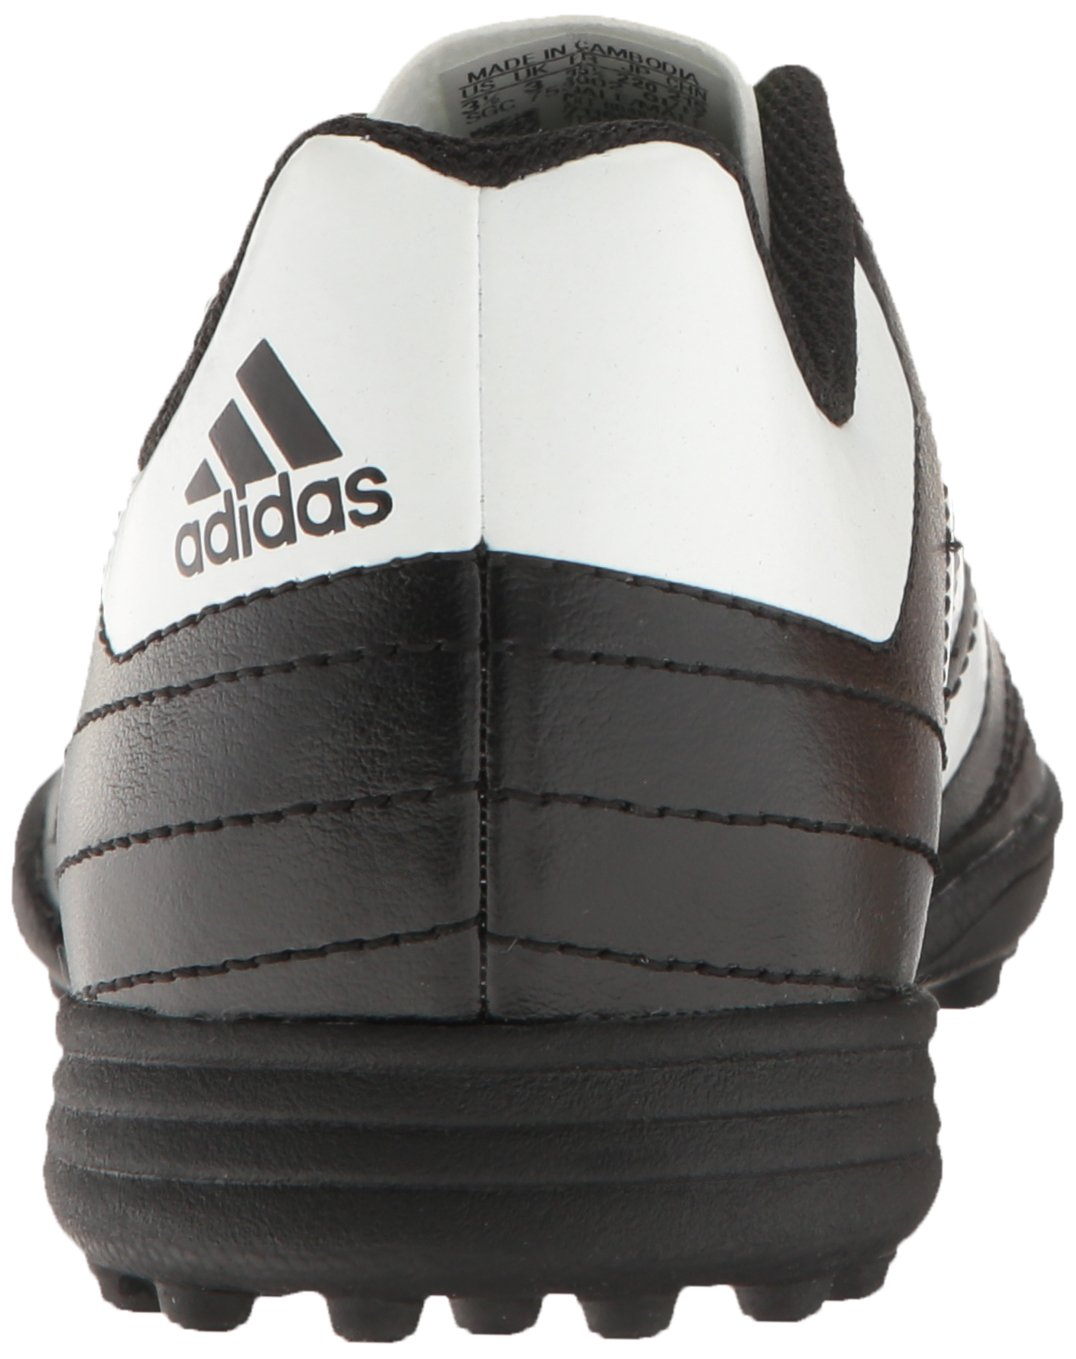 buy popular b35a5 8ca8f adidas Boys Goletto VI TF J Soccer Shoe, BlackWhiteSolar Green, 3 M US  Little Kid - 134  Soccer  Clothing, Shoes  Jewelry - tibs